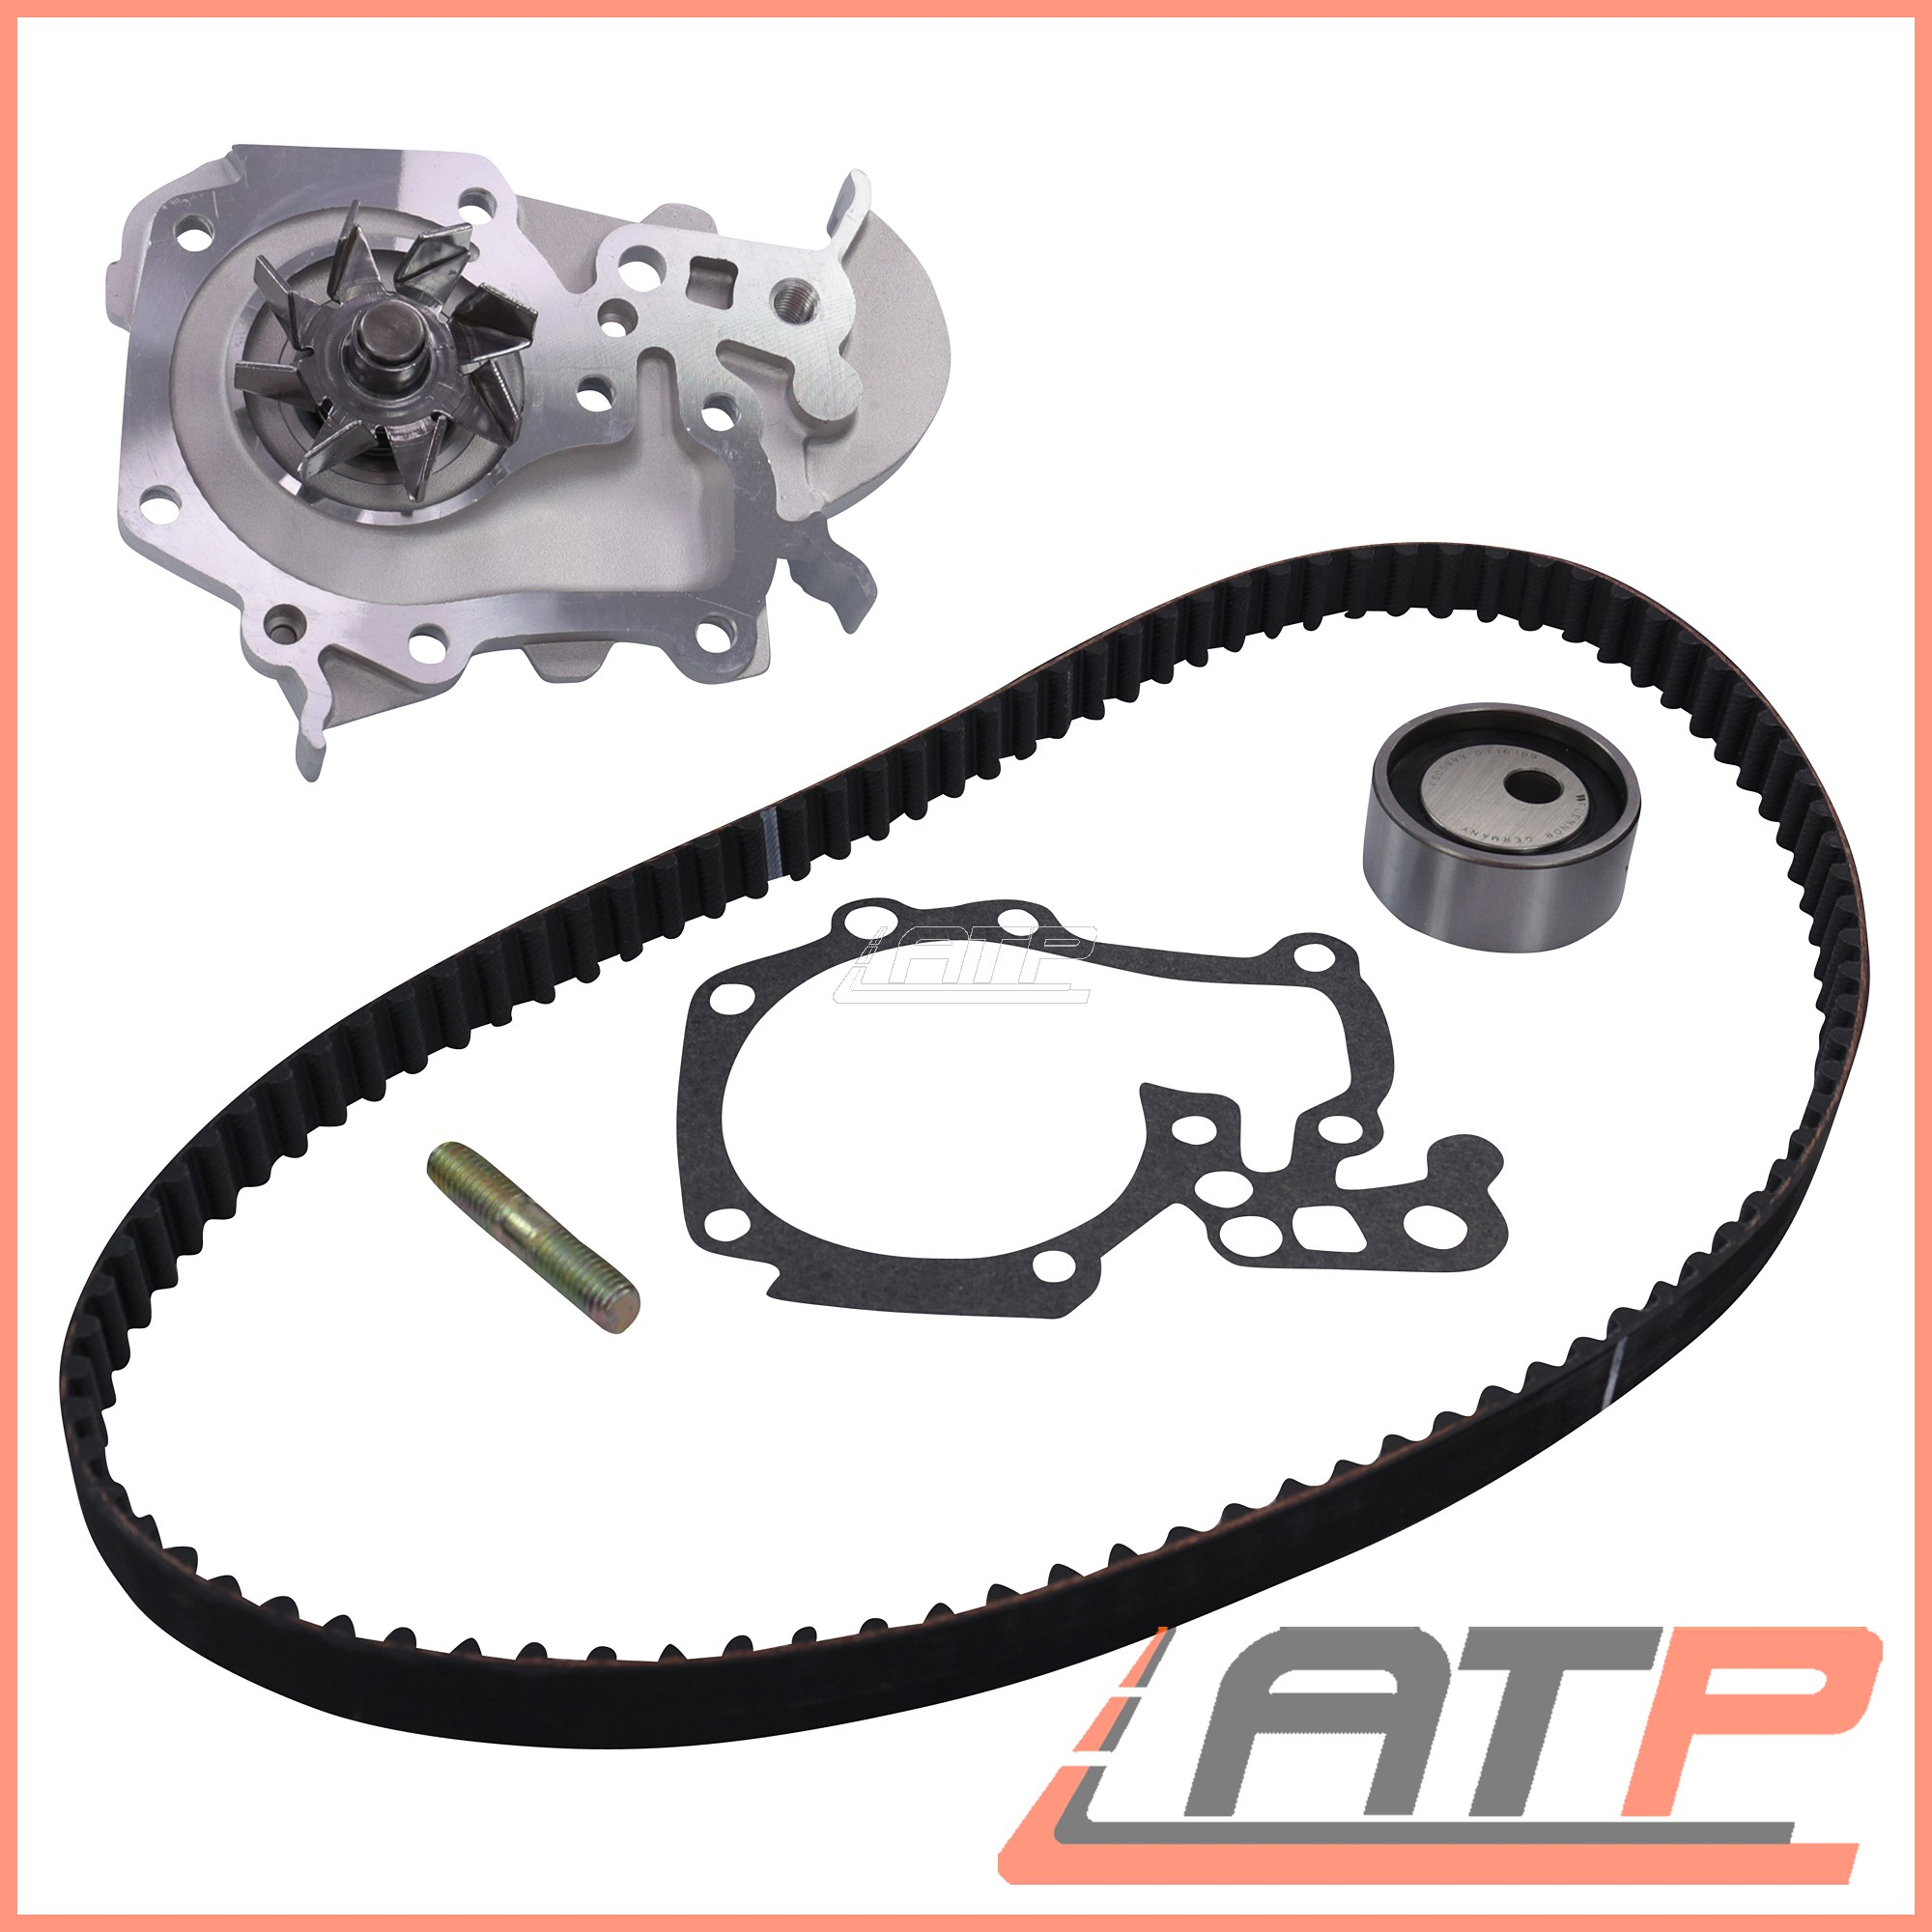 hight resolution of details about timing cam belt kit water pump renault megane mk i 96 03 scenic 96 99 1 6 e